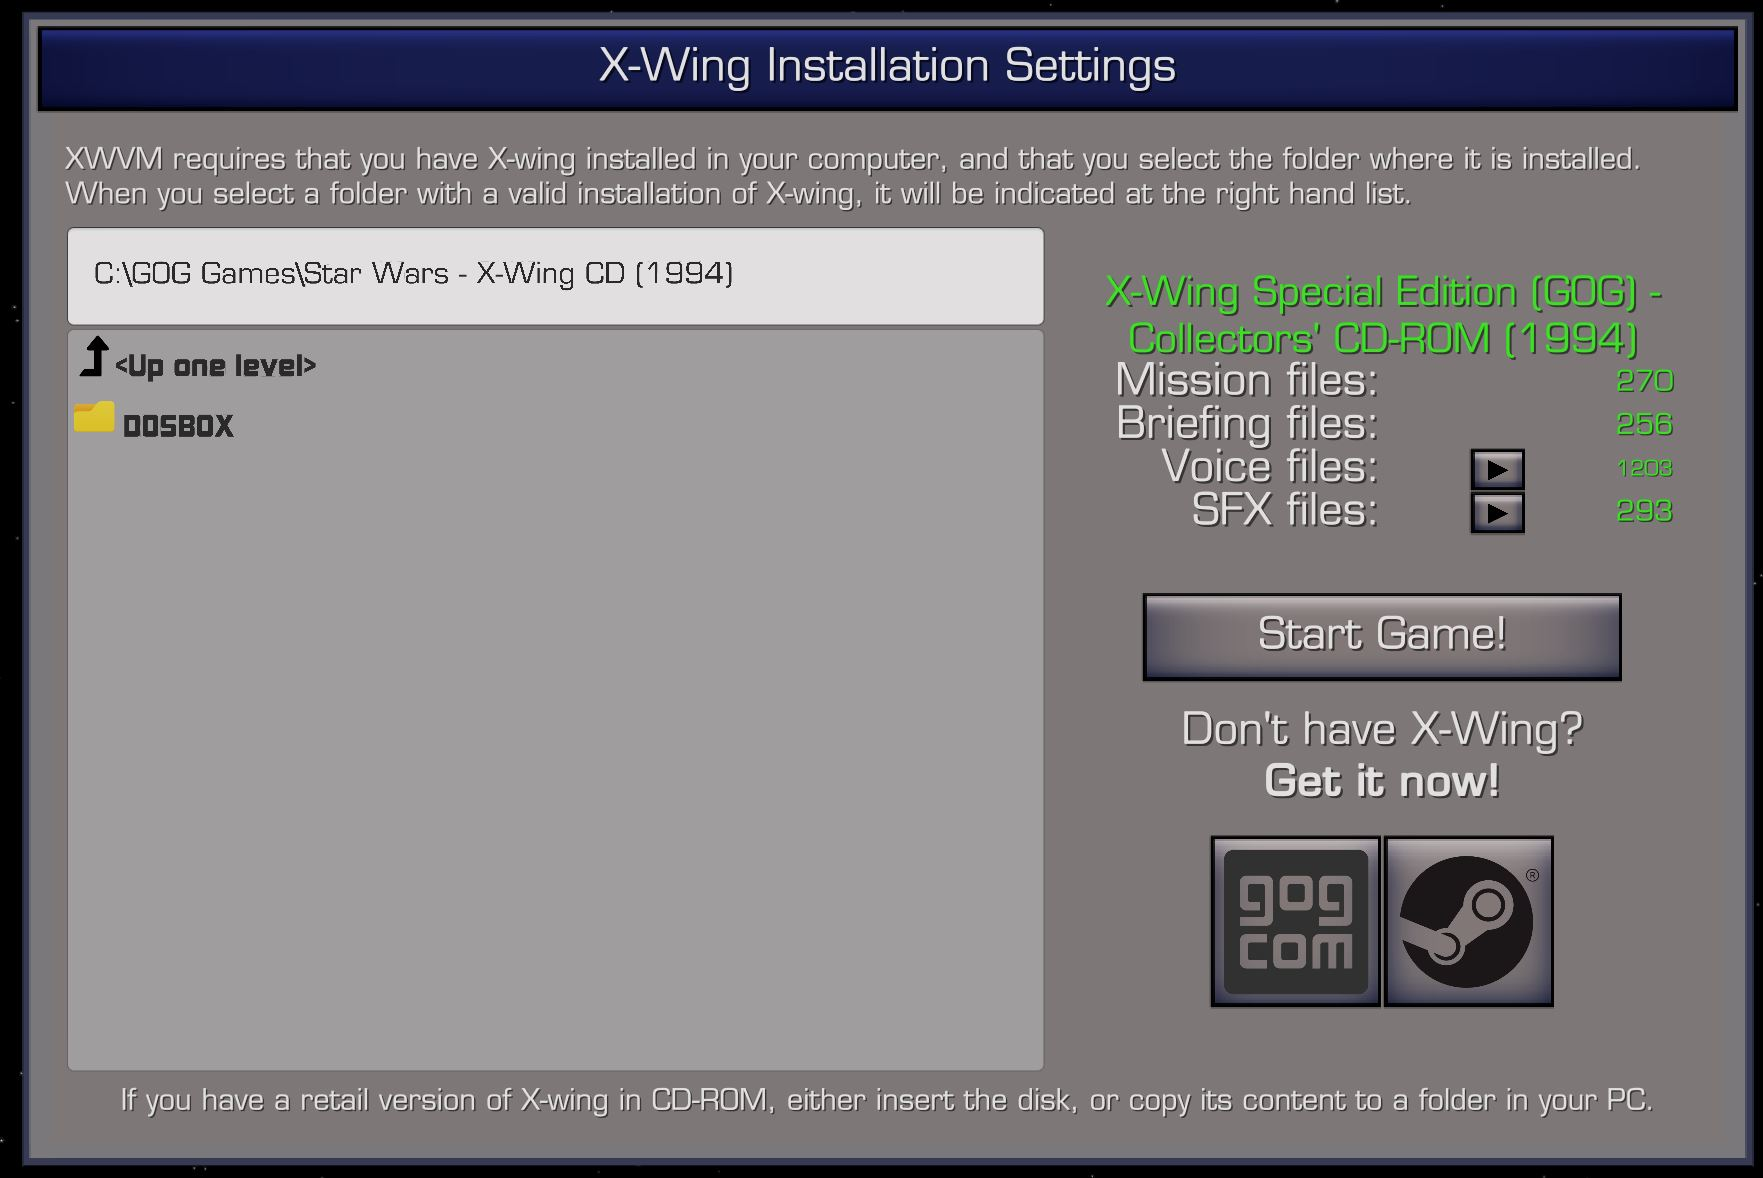 X-wing install folder selection screen in XWVM